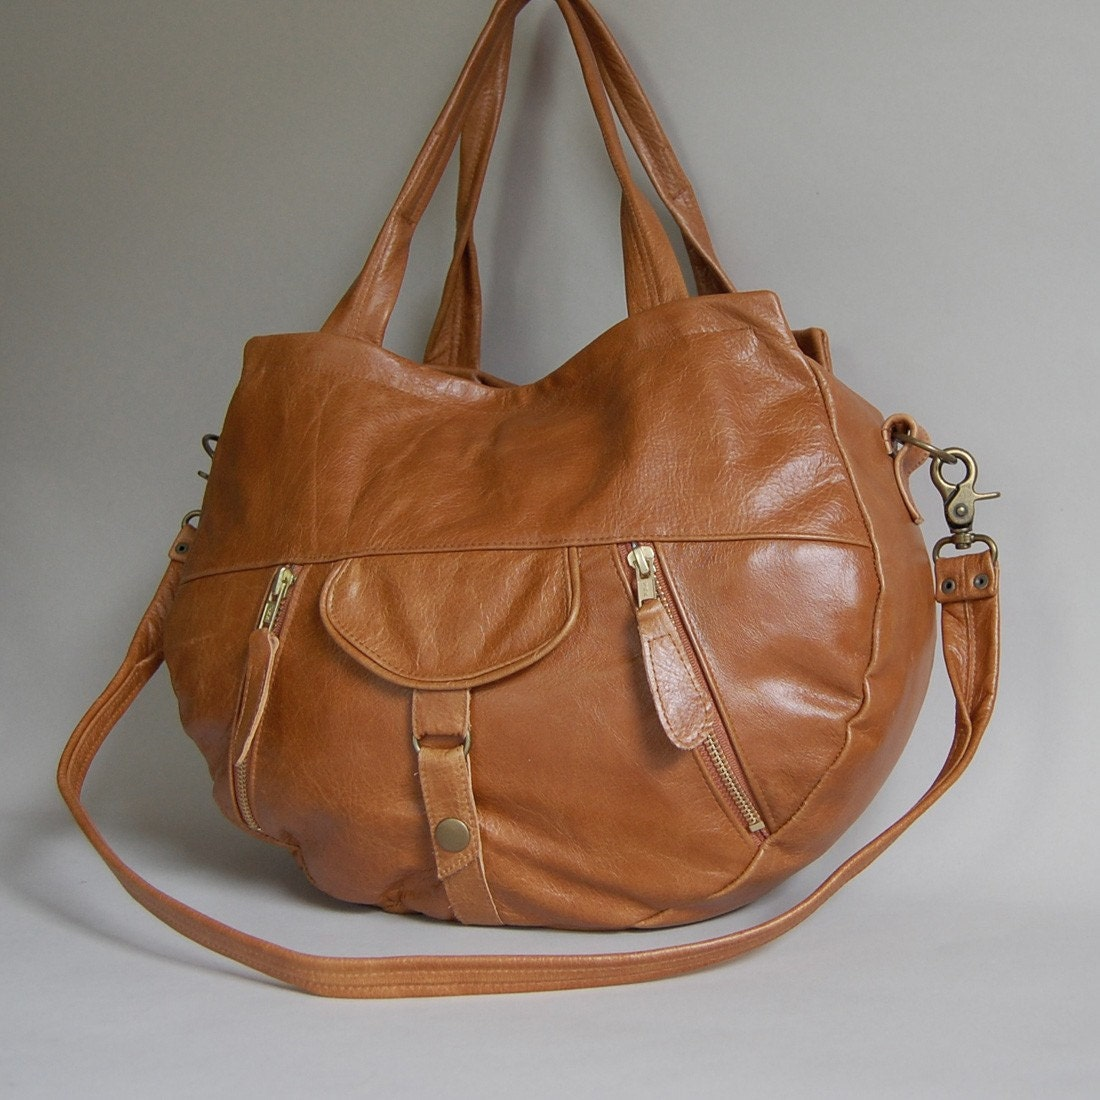 Lynx bag in golden honey - clip on cross body strap